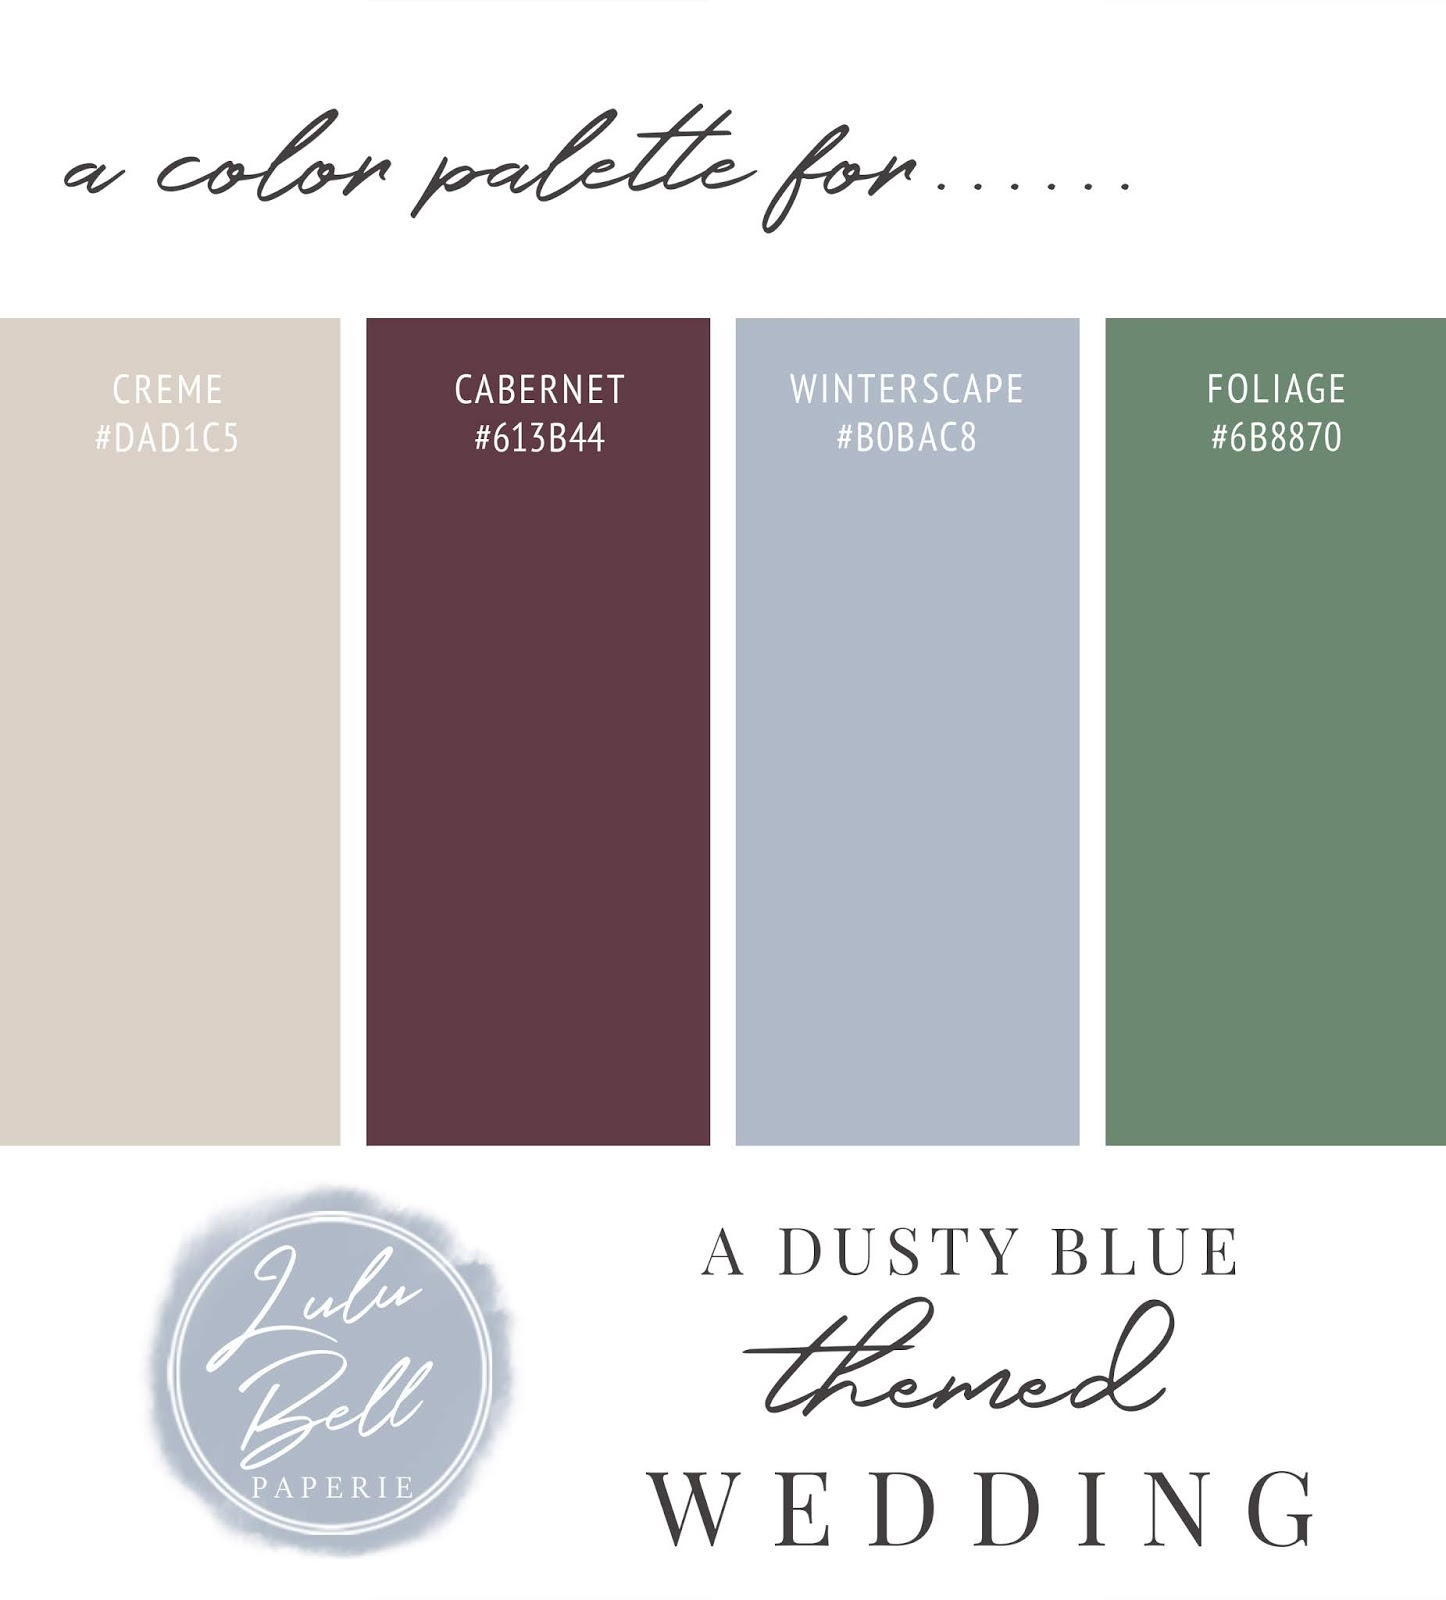 Dusty Blue, Burgundy, Green, and Beige Wedding Color Palette Swatch Card : Creme, Cabernet, Winterscape, and Foliage